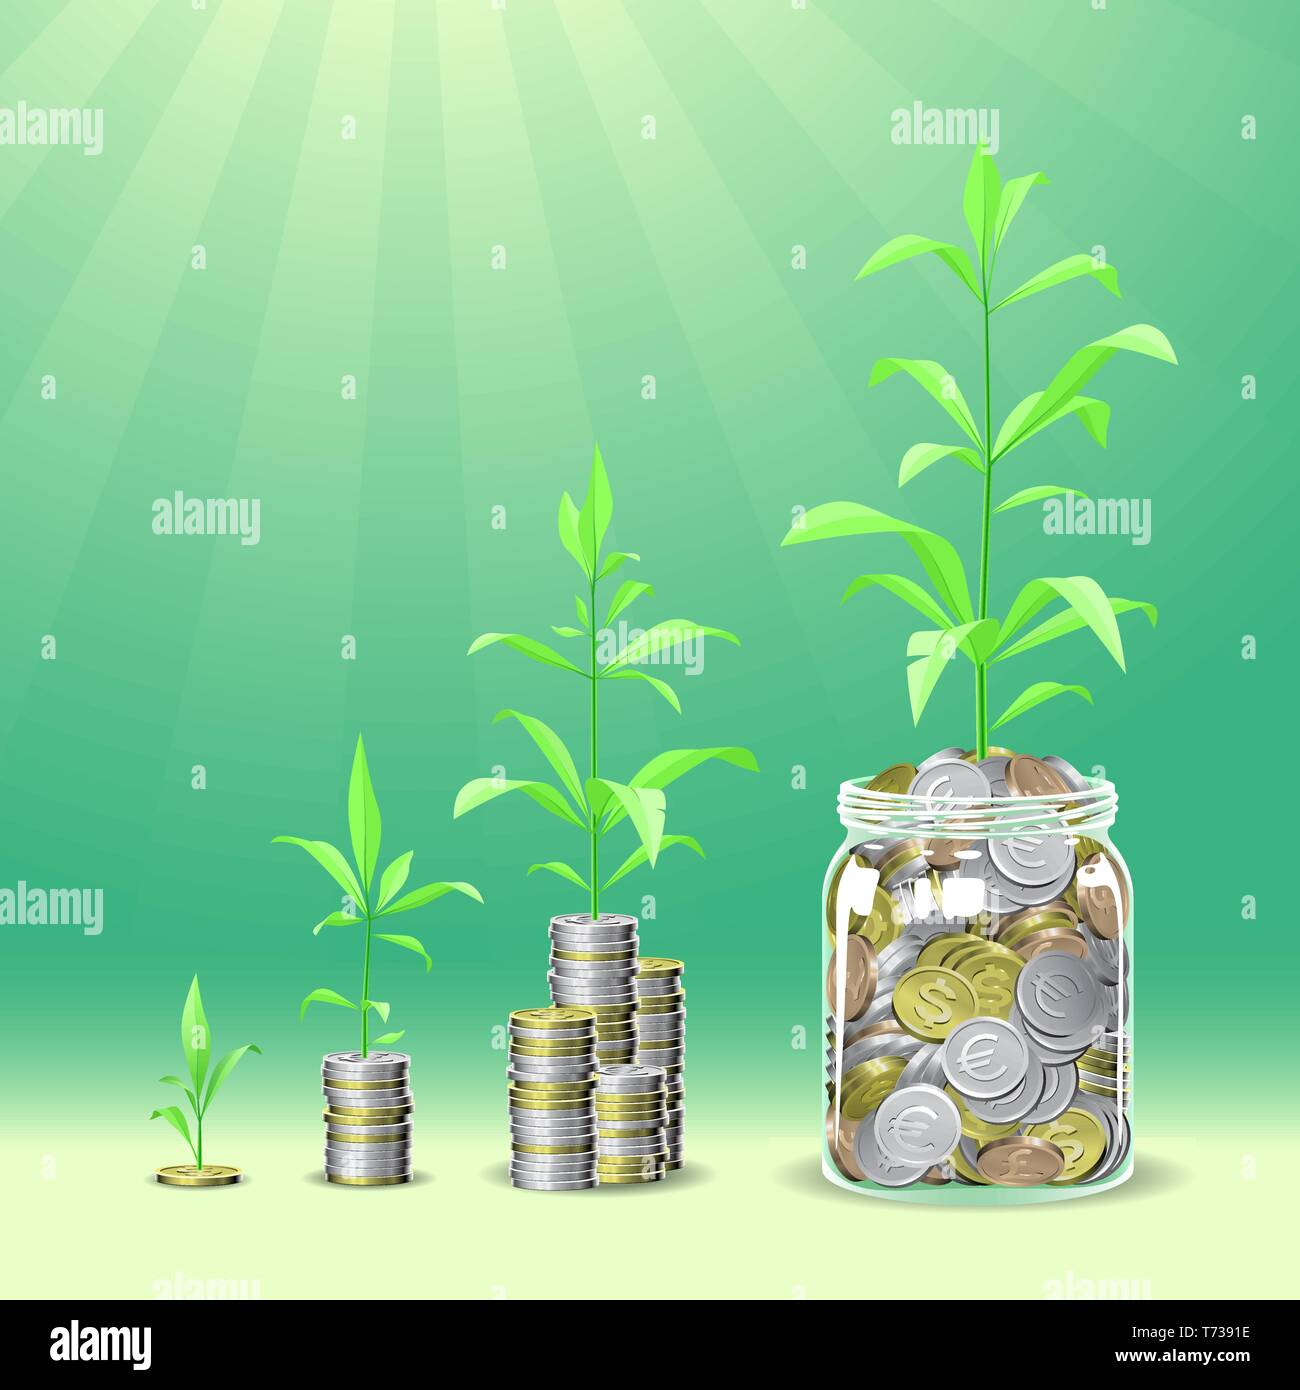 Coins stacks with a plants growing on the top. - Stock Vector